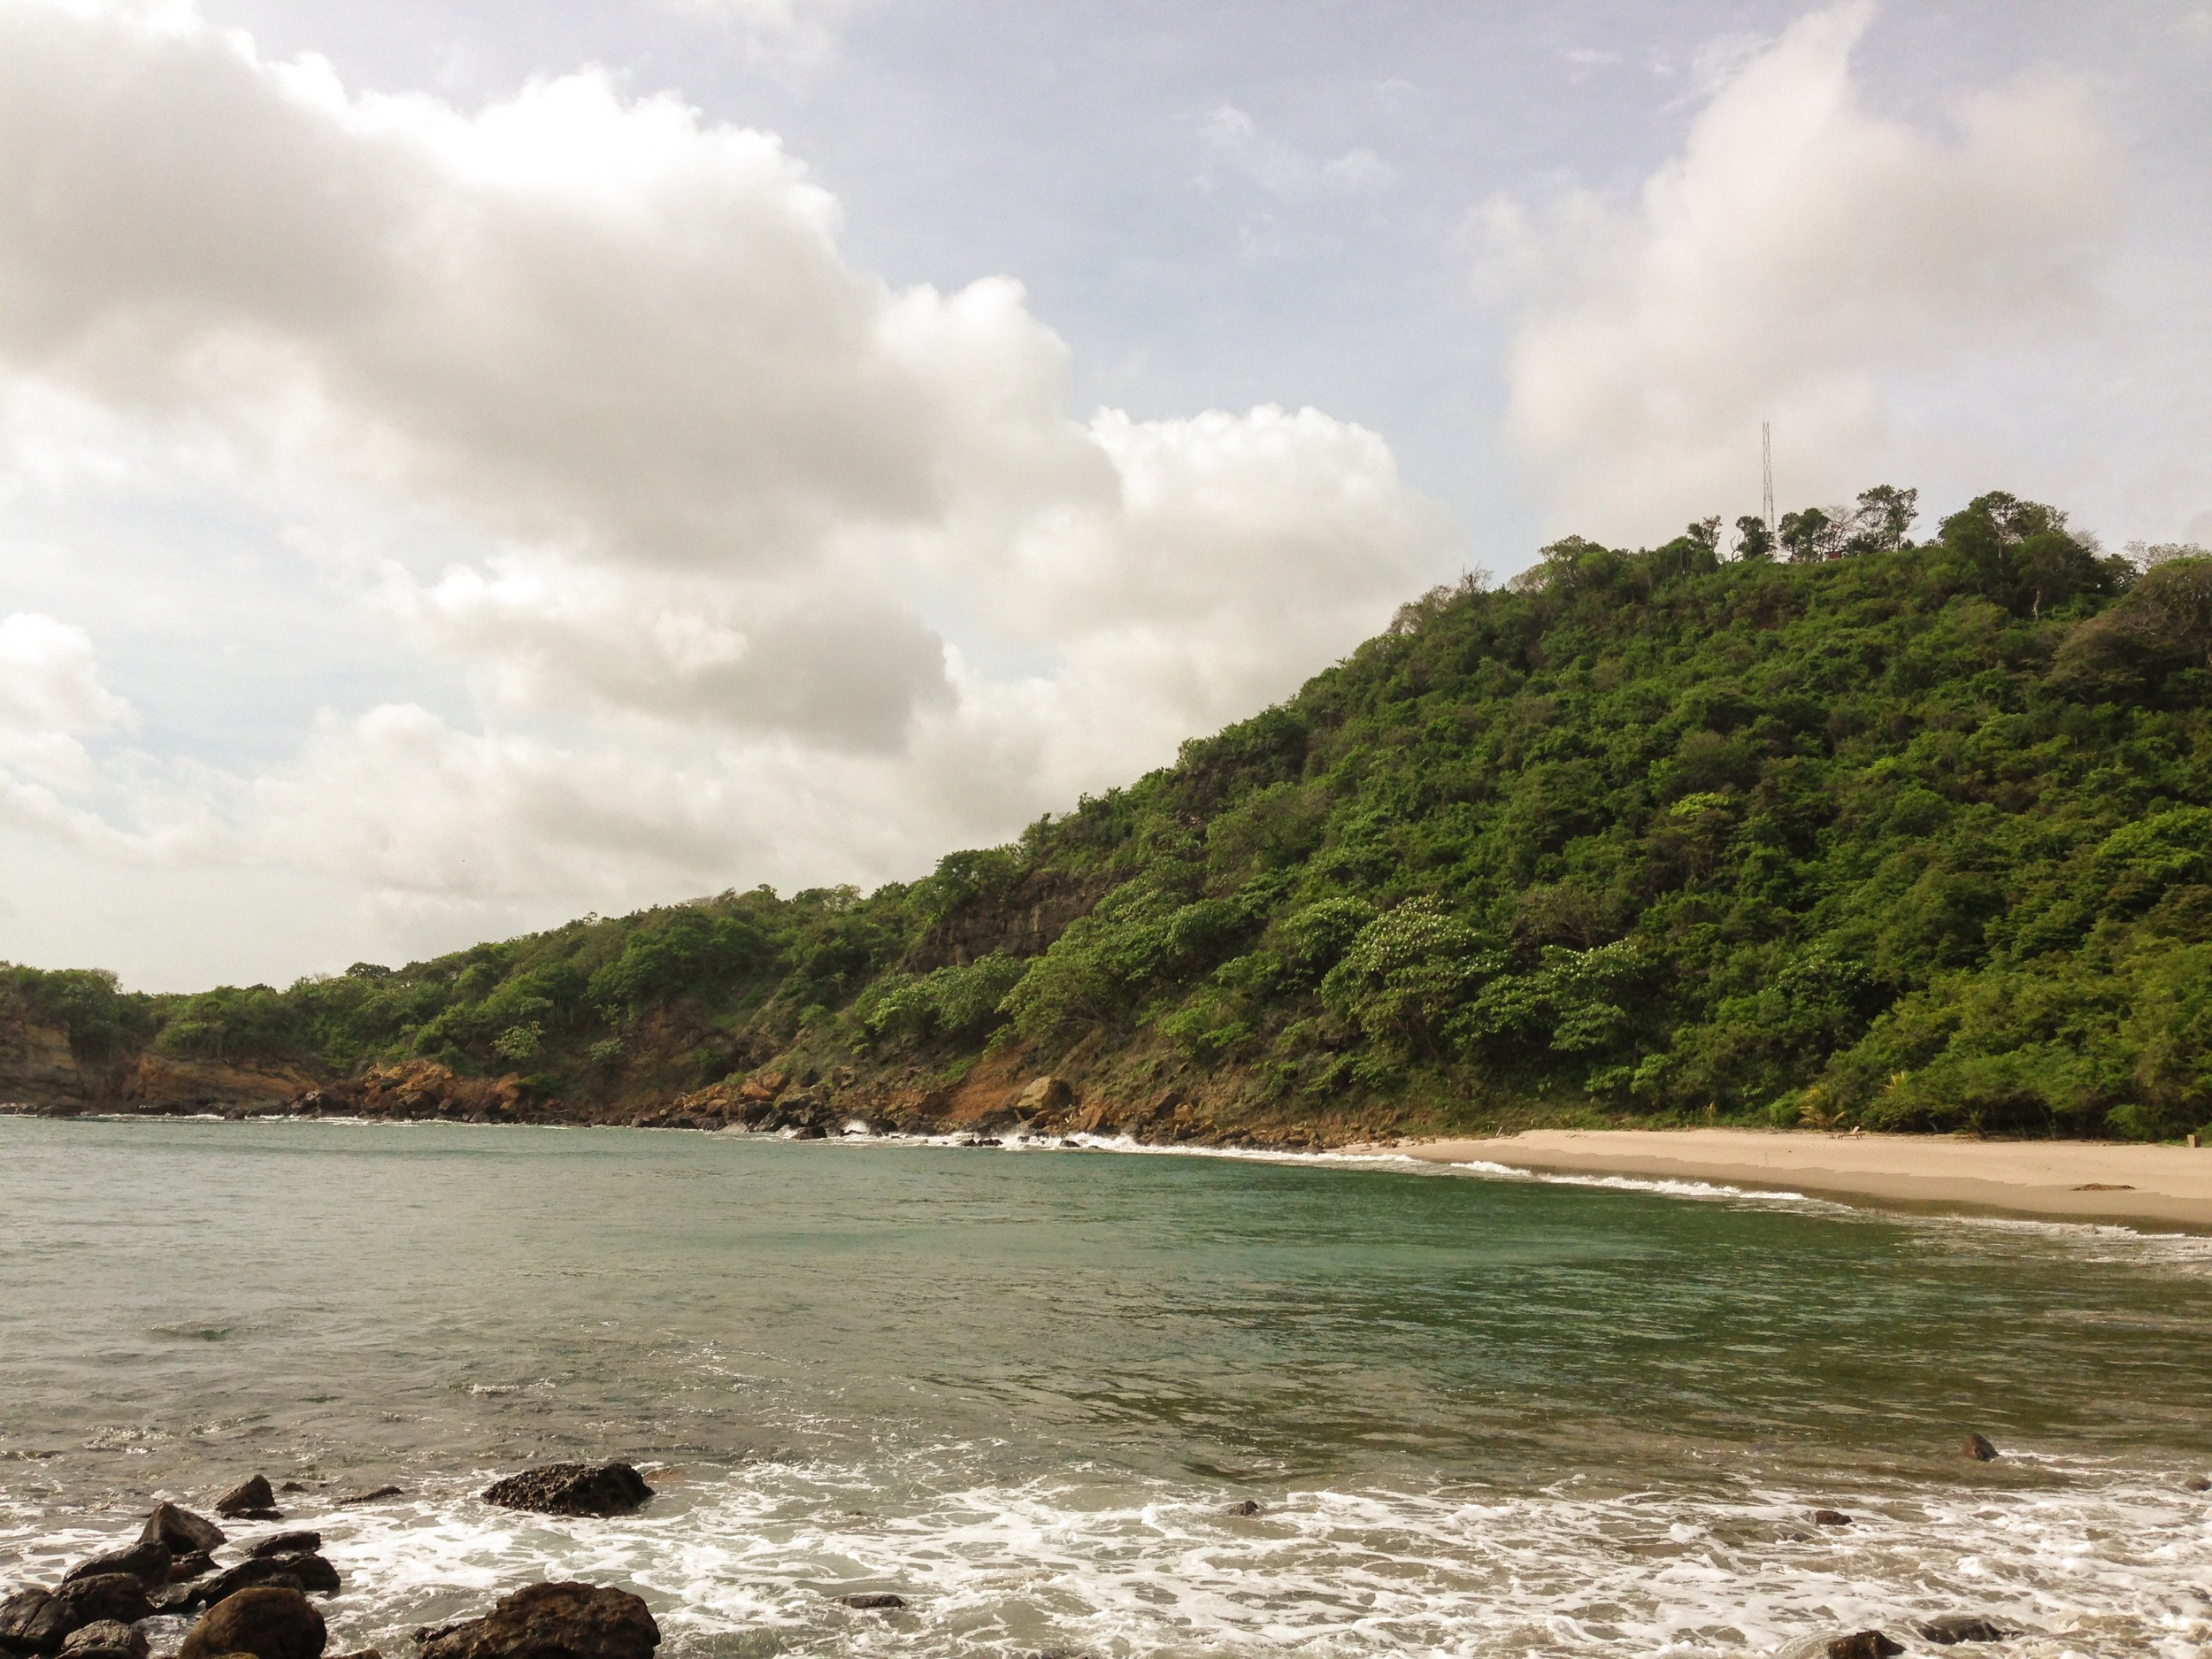 The cove means no big waves, which is not great for surfers but super for relaxing. Playa Gigante has enough waves for both little towns!